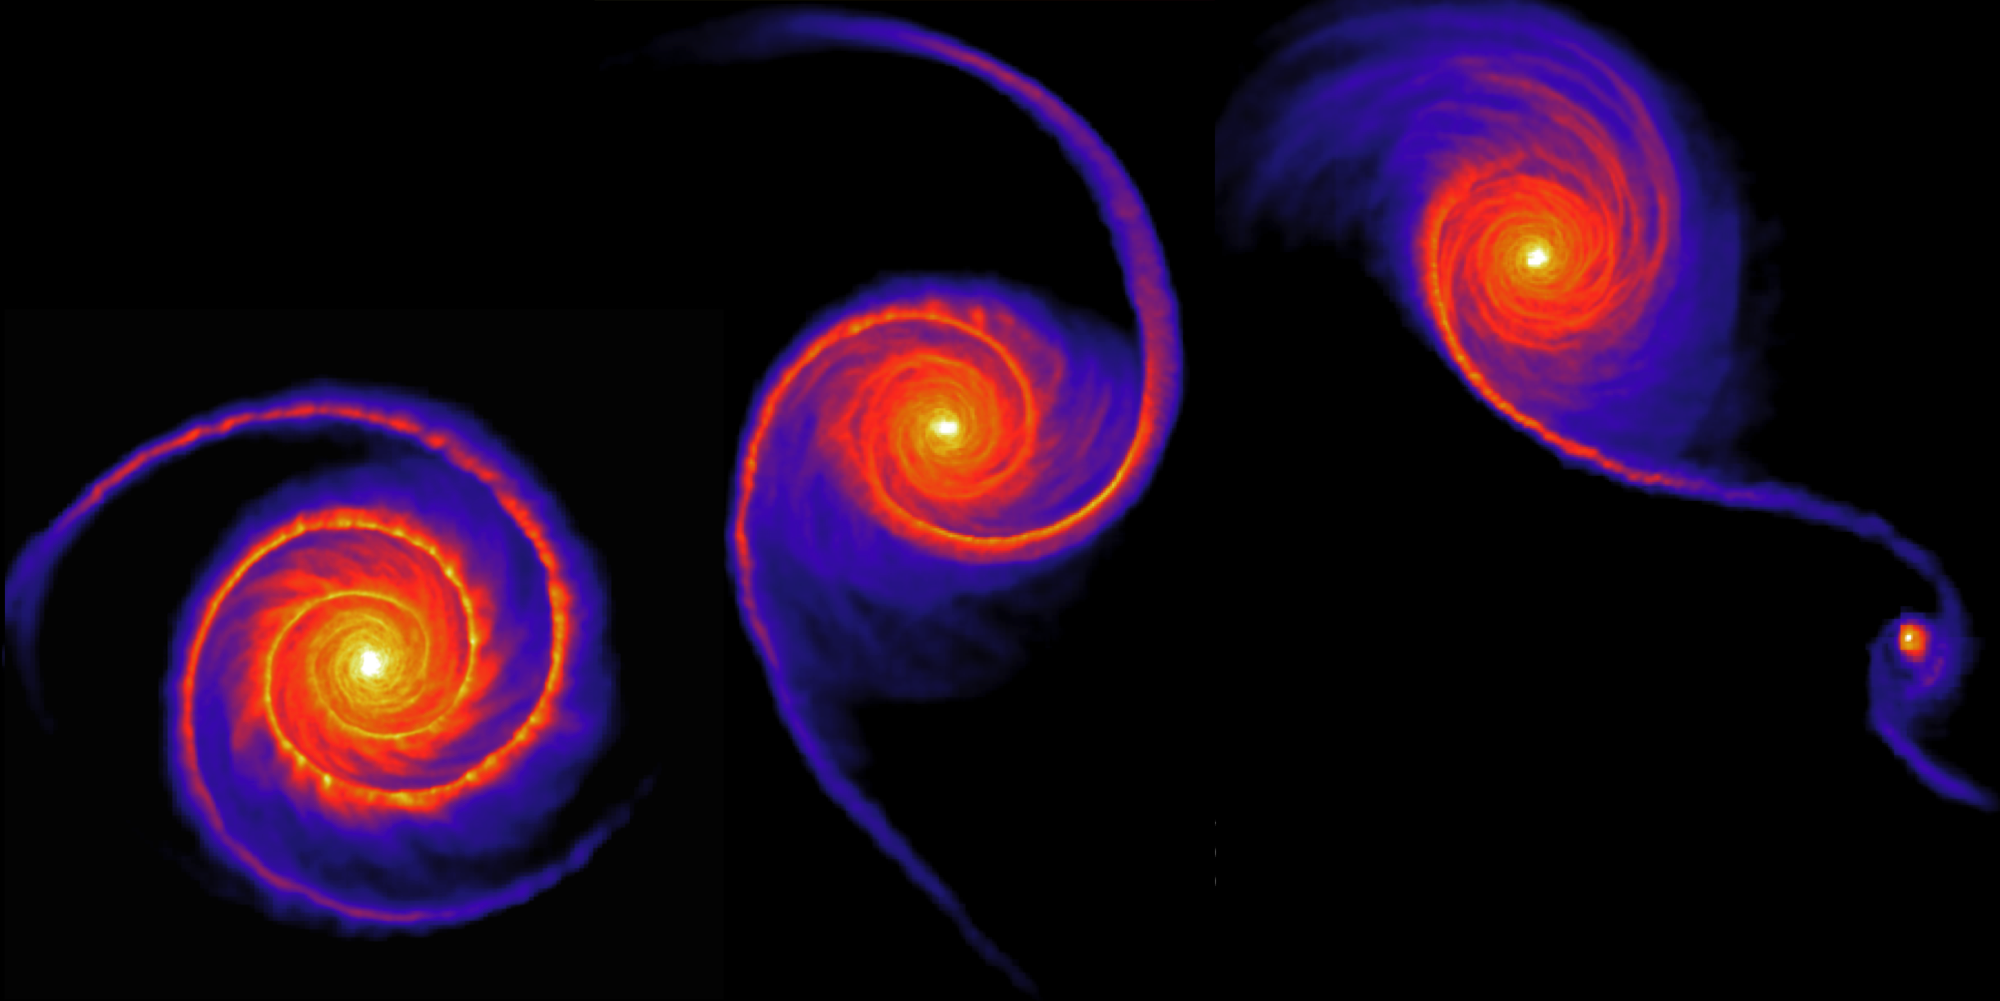 Spiral structure in a galactic disc driven by a small companion